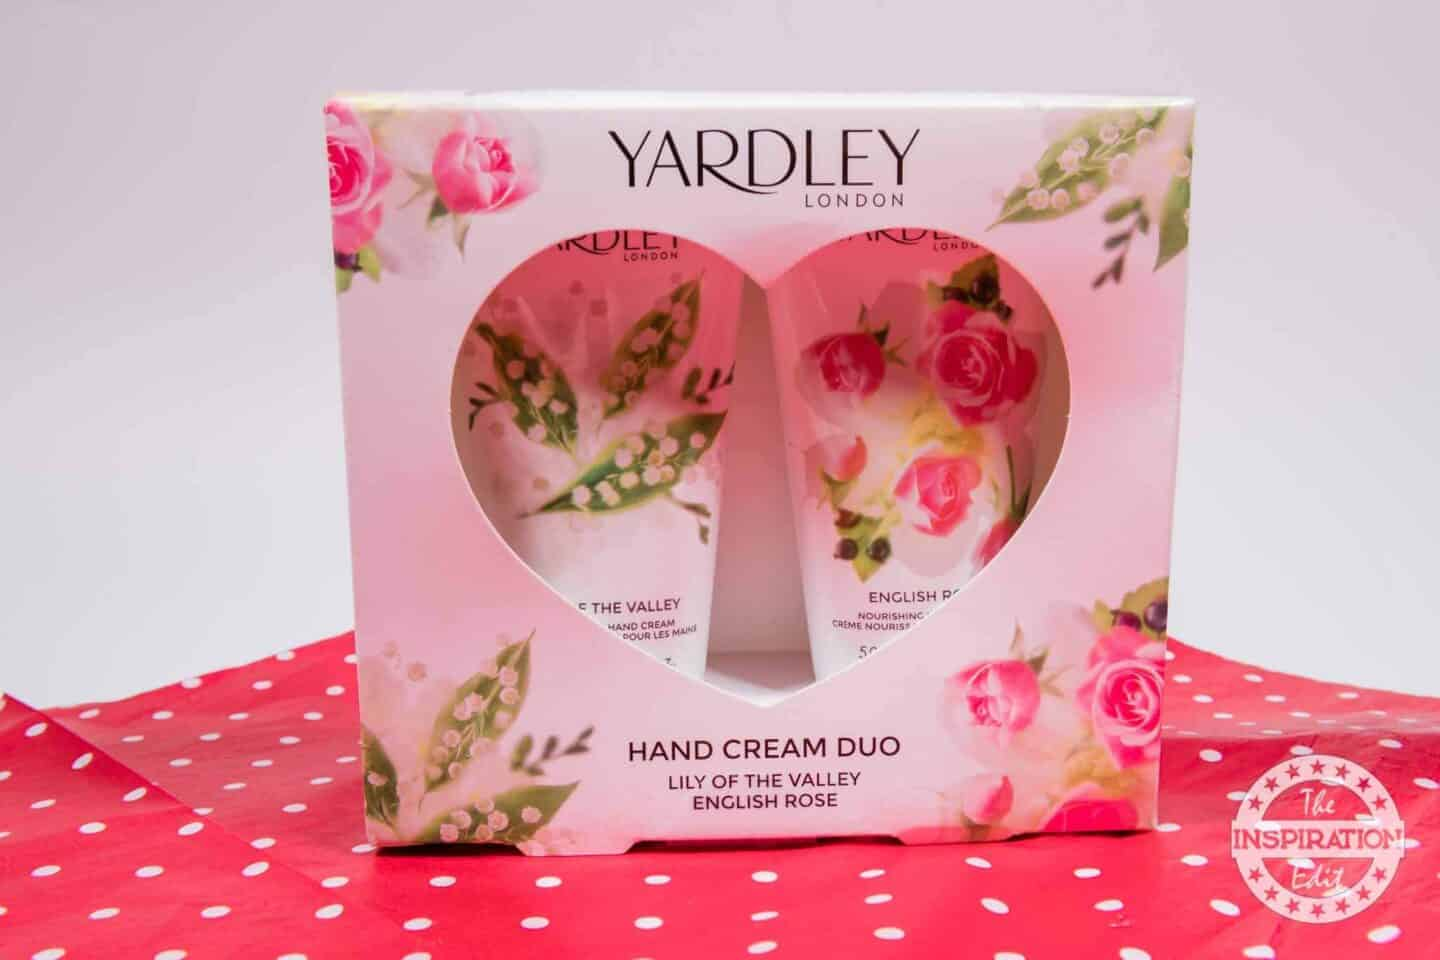 Yardley London Valentines Gift Guide